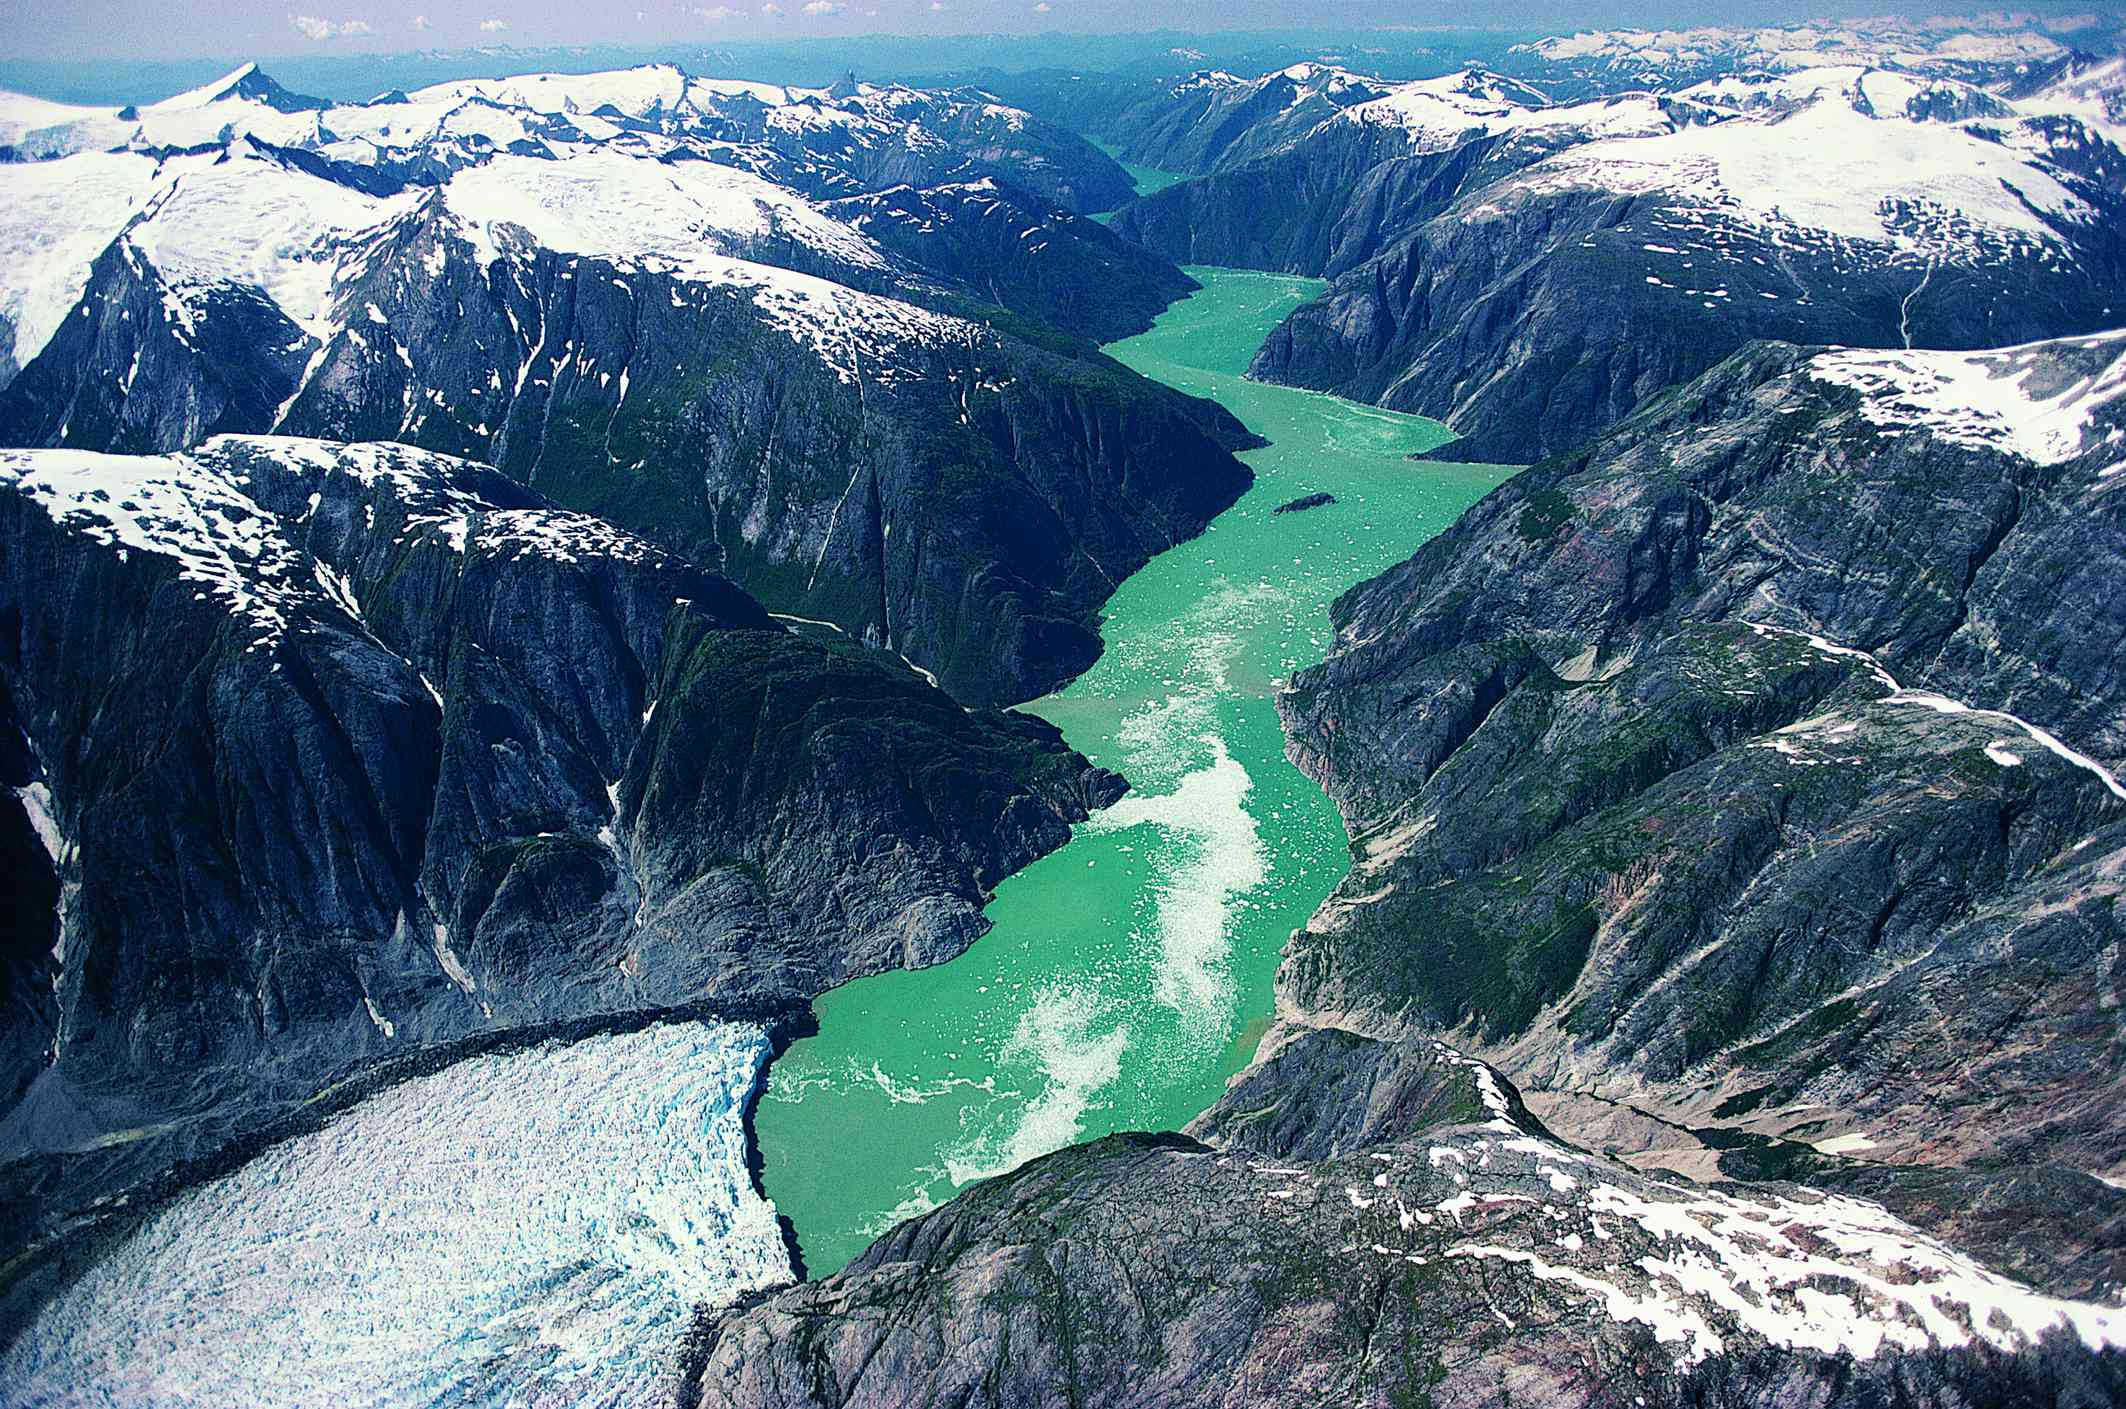 Tracy Arm Fjord seen from above